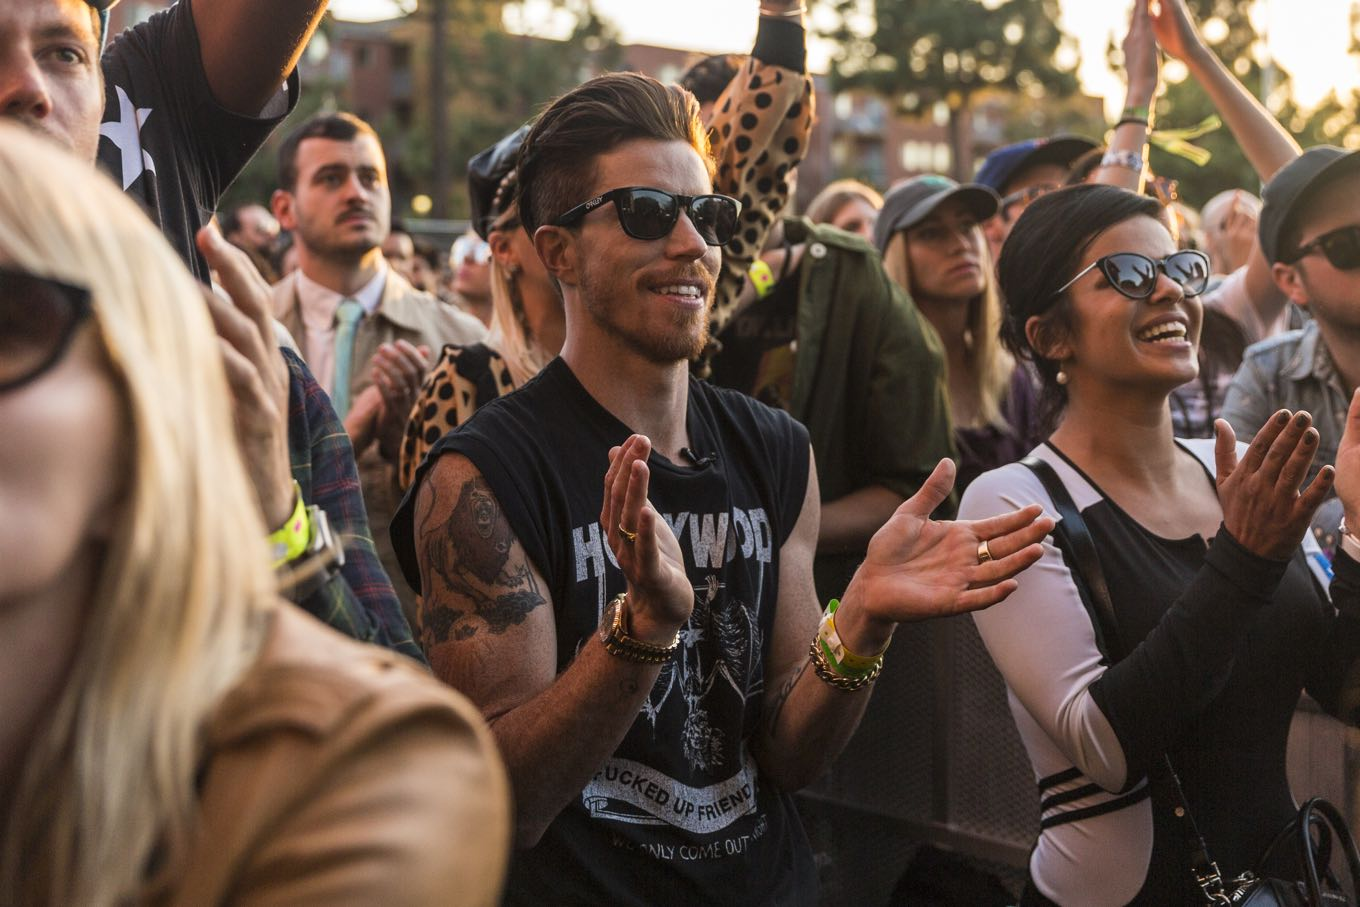 6 Fashion Trends Spotted at Air + Style Festival in Los Angeles